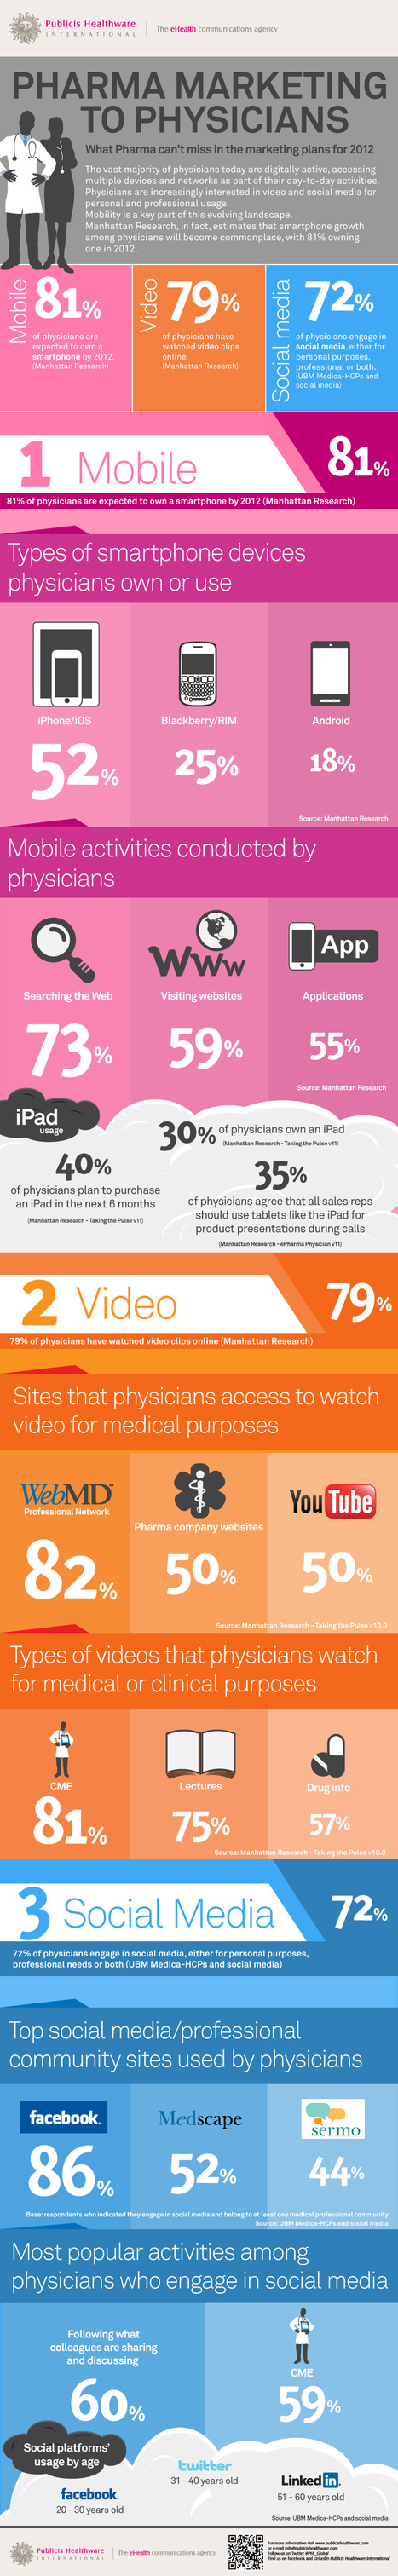 Pharma marketing to physicians [infographic] | Digital Health and Pharma | Scoop.it